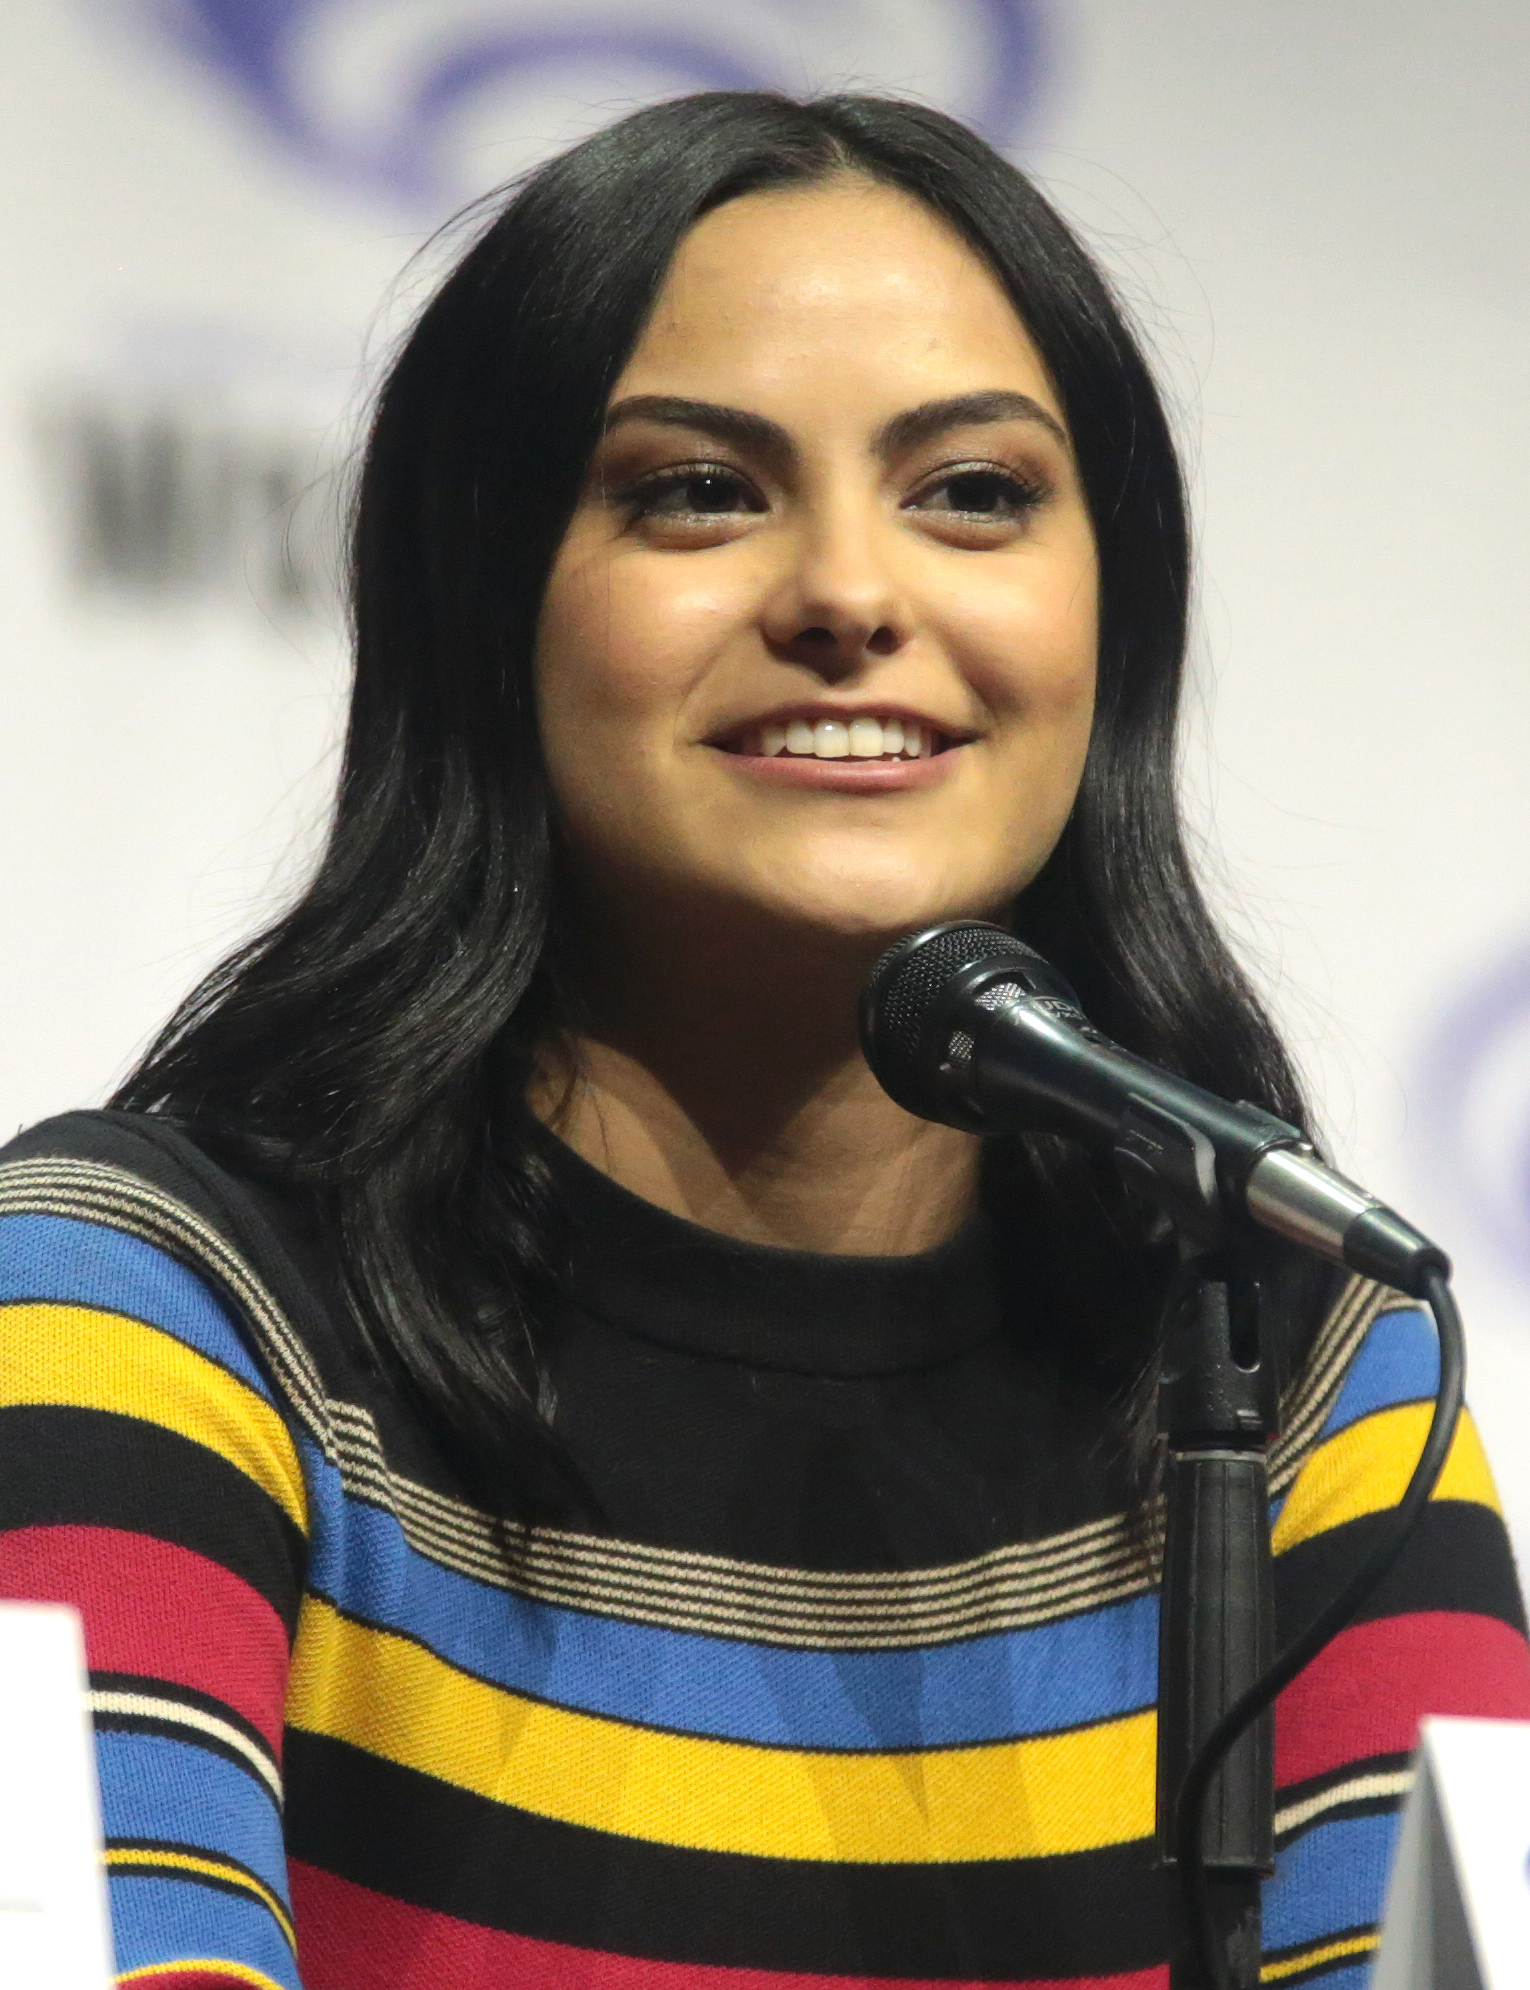 The 24-year old daughter of father (?) and mother(?) Camila Mendes in 2018 photo. Camila Mendes earned a  million dollar salary - leaving the net worth at 0.05 million in 2018